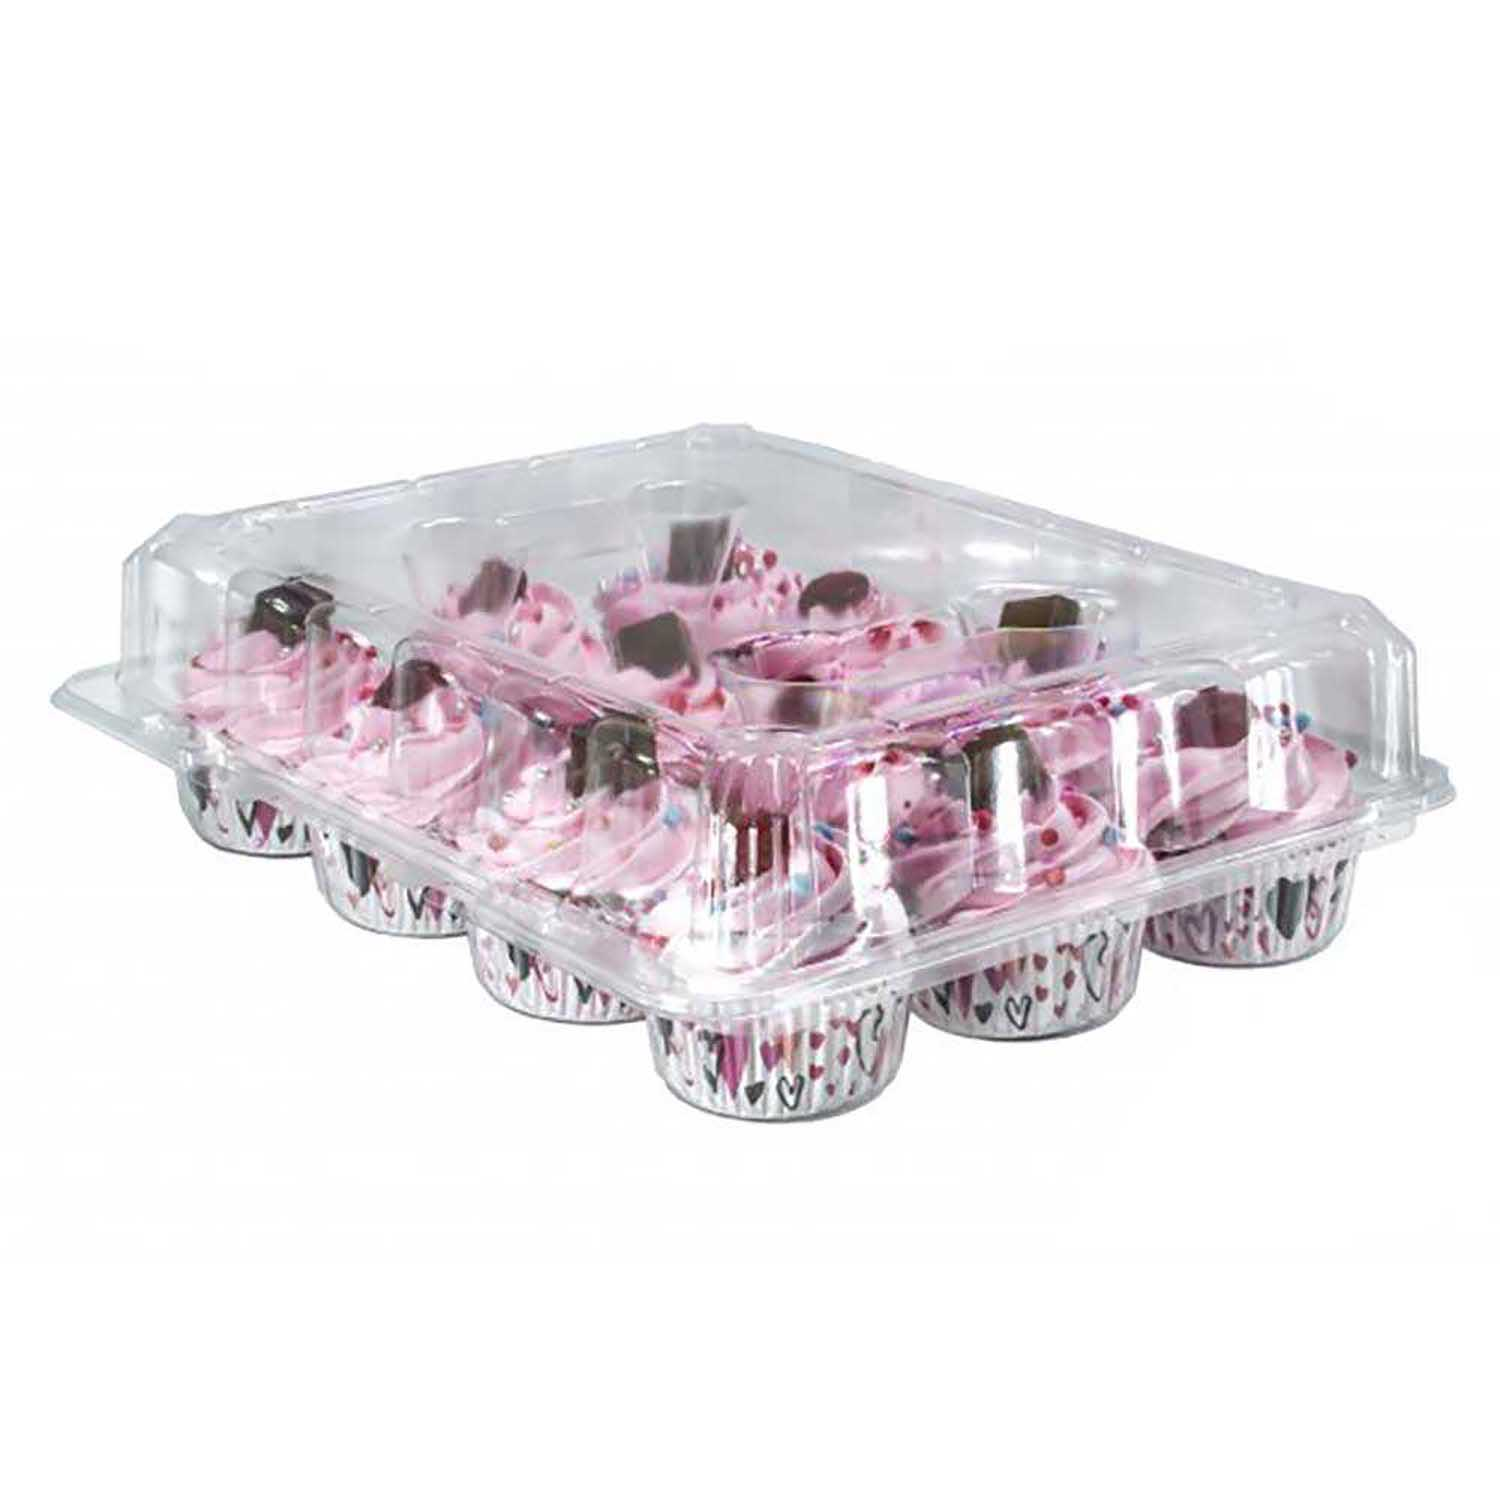 Plastic Shell - Holds 12 Standard Size Cupcakes